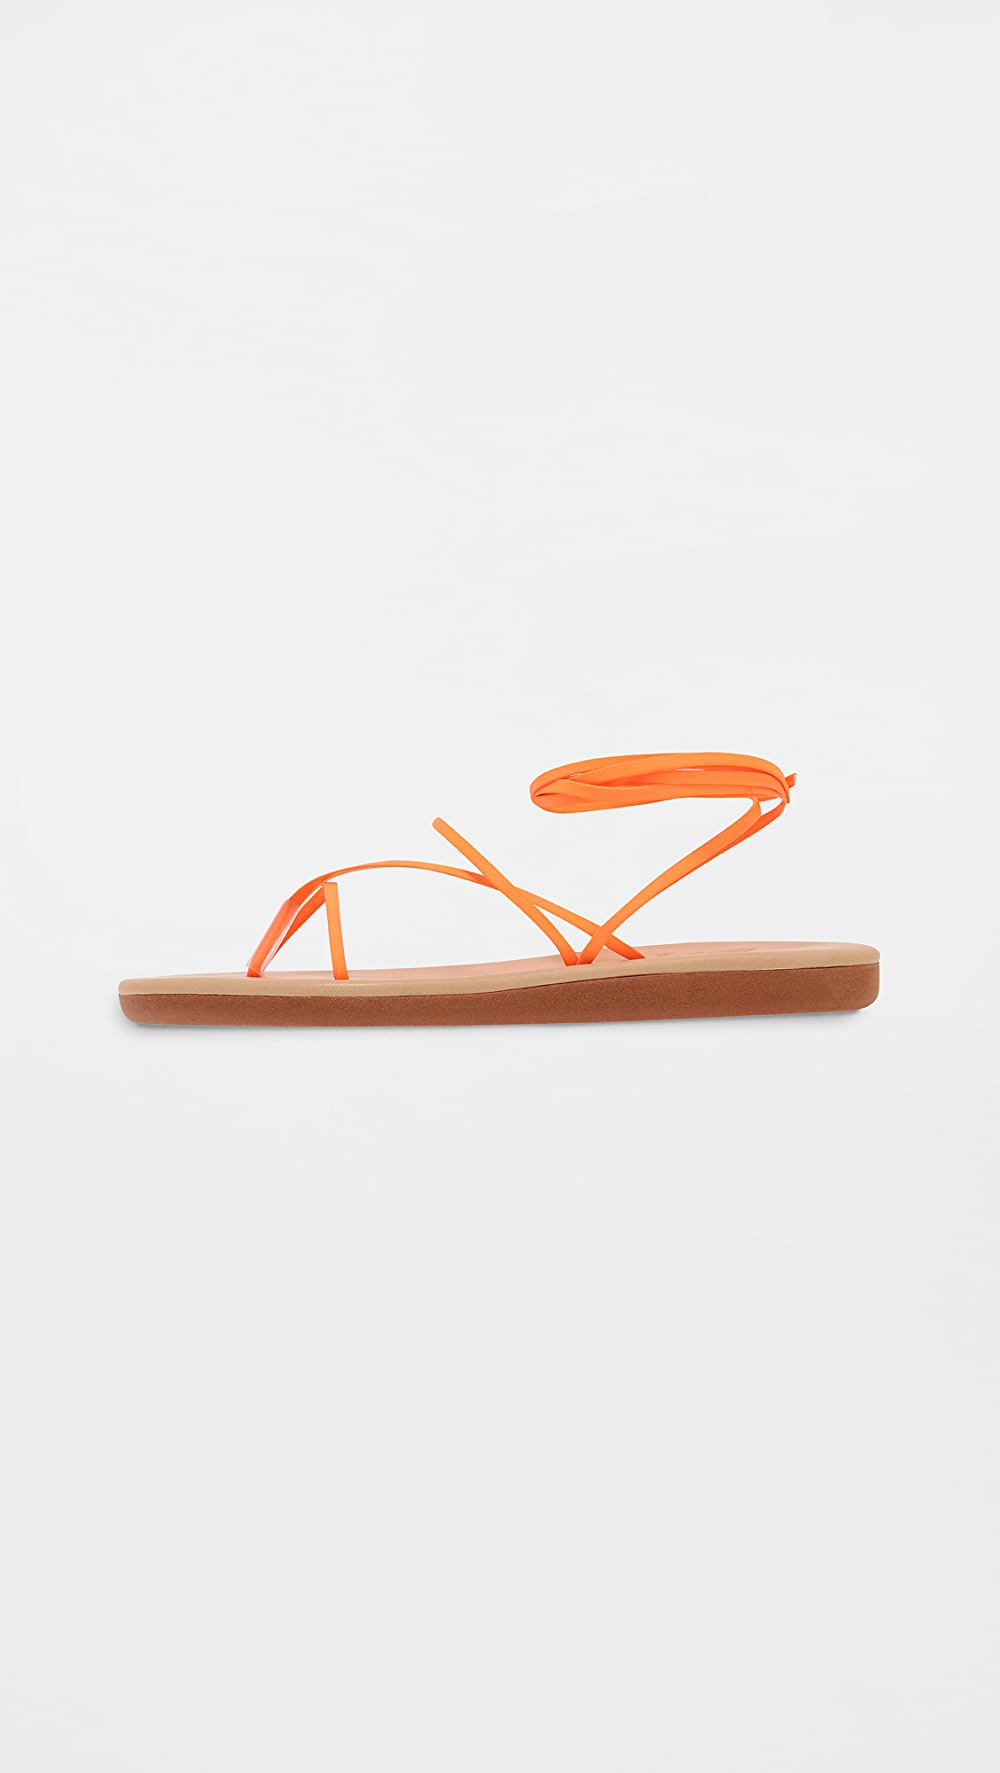 Industrious Ancient Greek Sandals - String Flip Flops Soft And Light